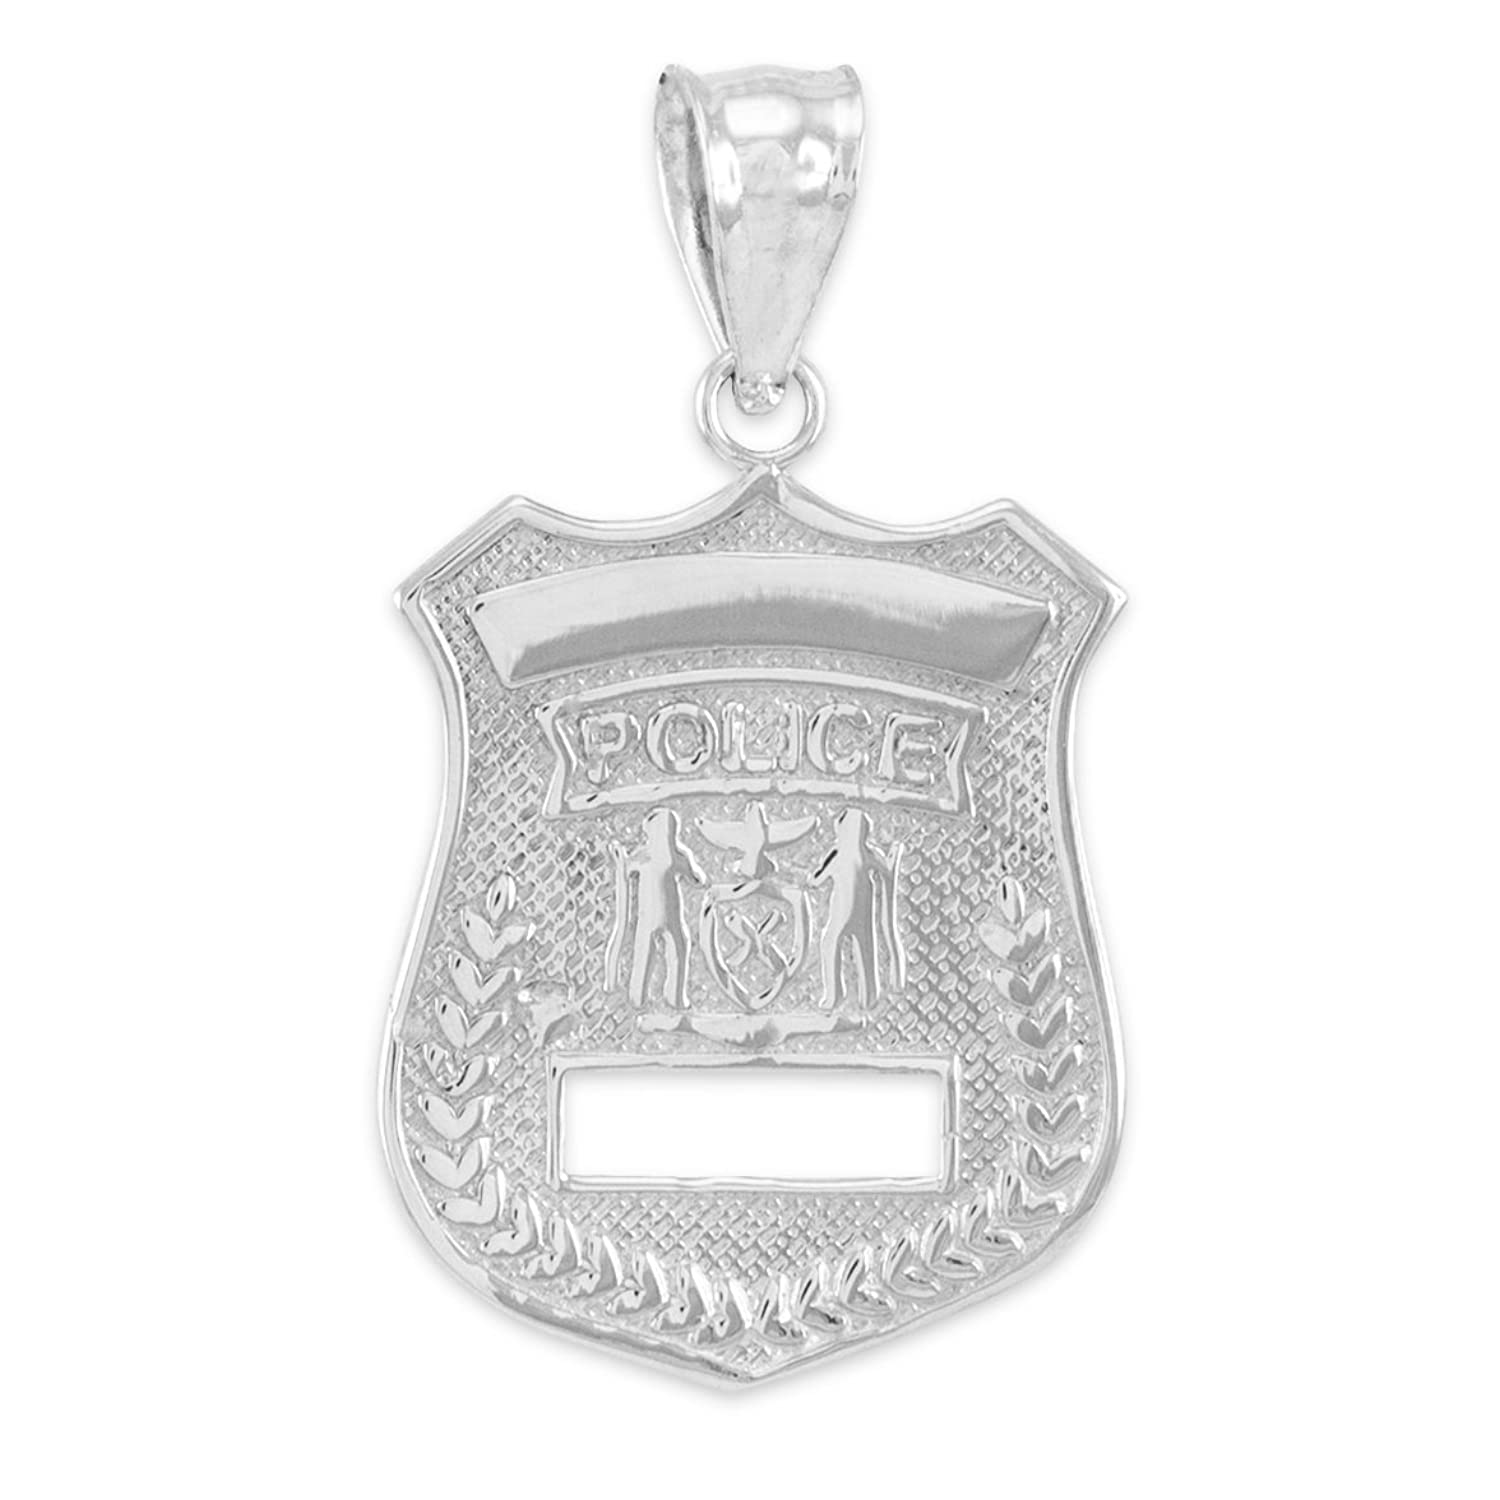 accessories necklace adults badge police for fancy p and dress pendant